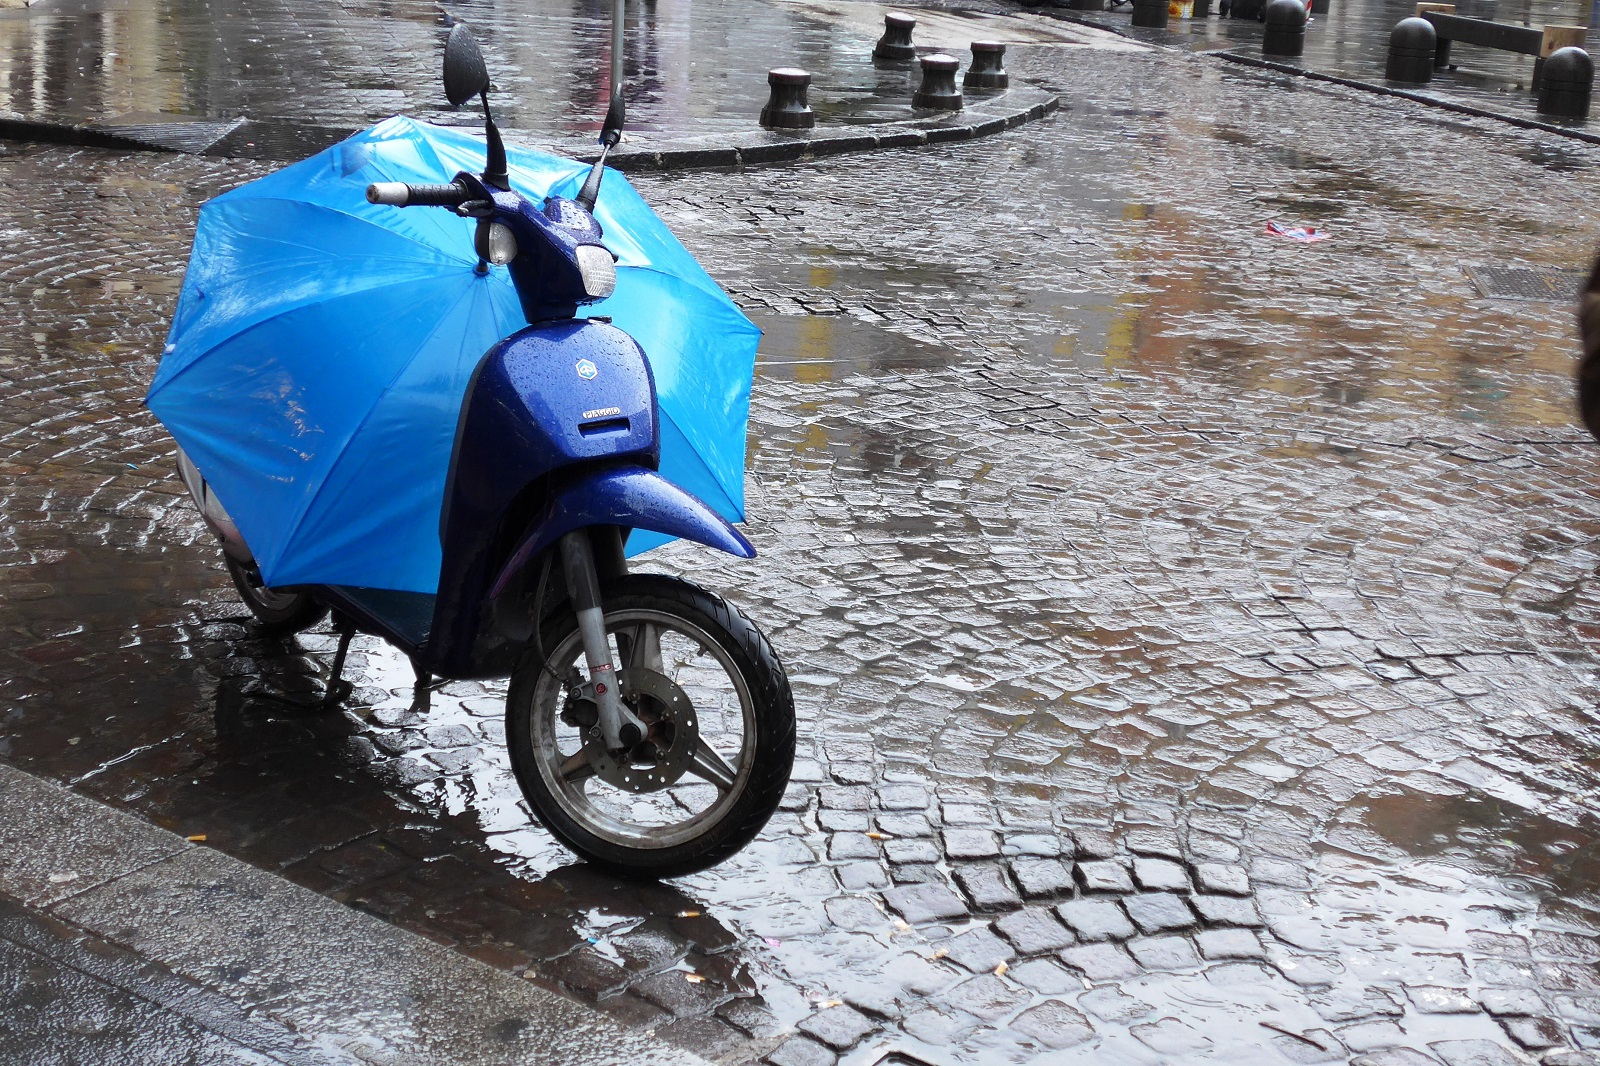 Vespa and Umbrella in Italy